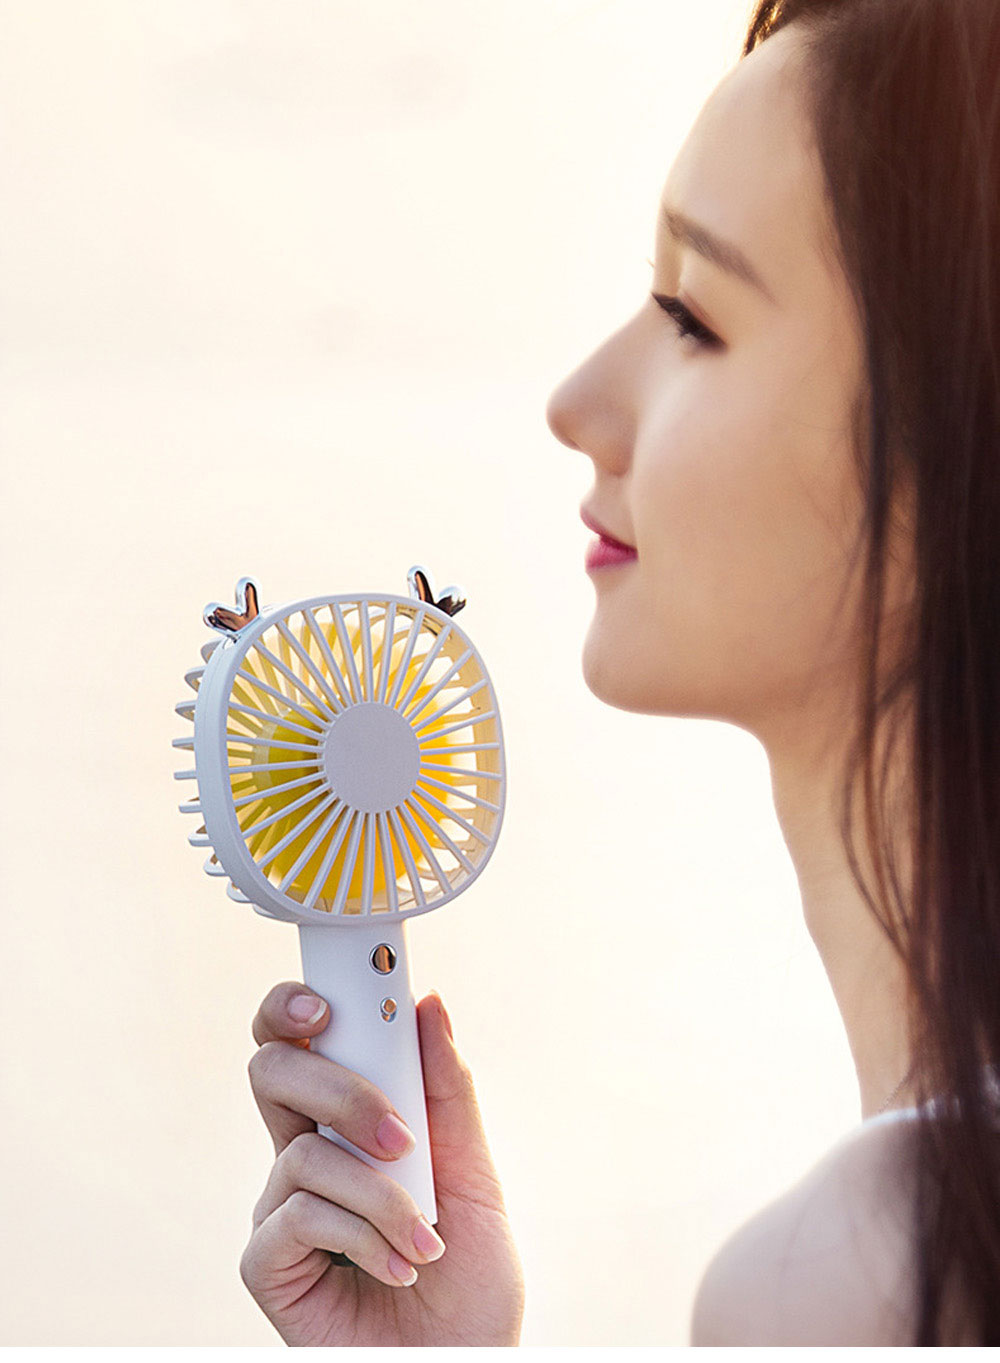 Creative Cute Animal Ears Model Portable Handheld Fan Outdoors Large Capacity Mini Fan with Night Light Base 11